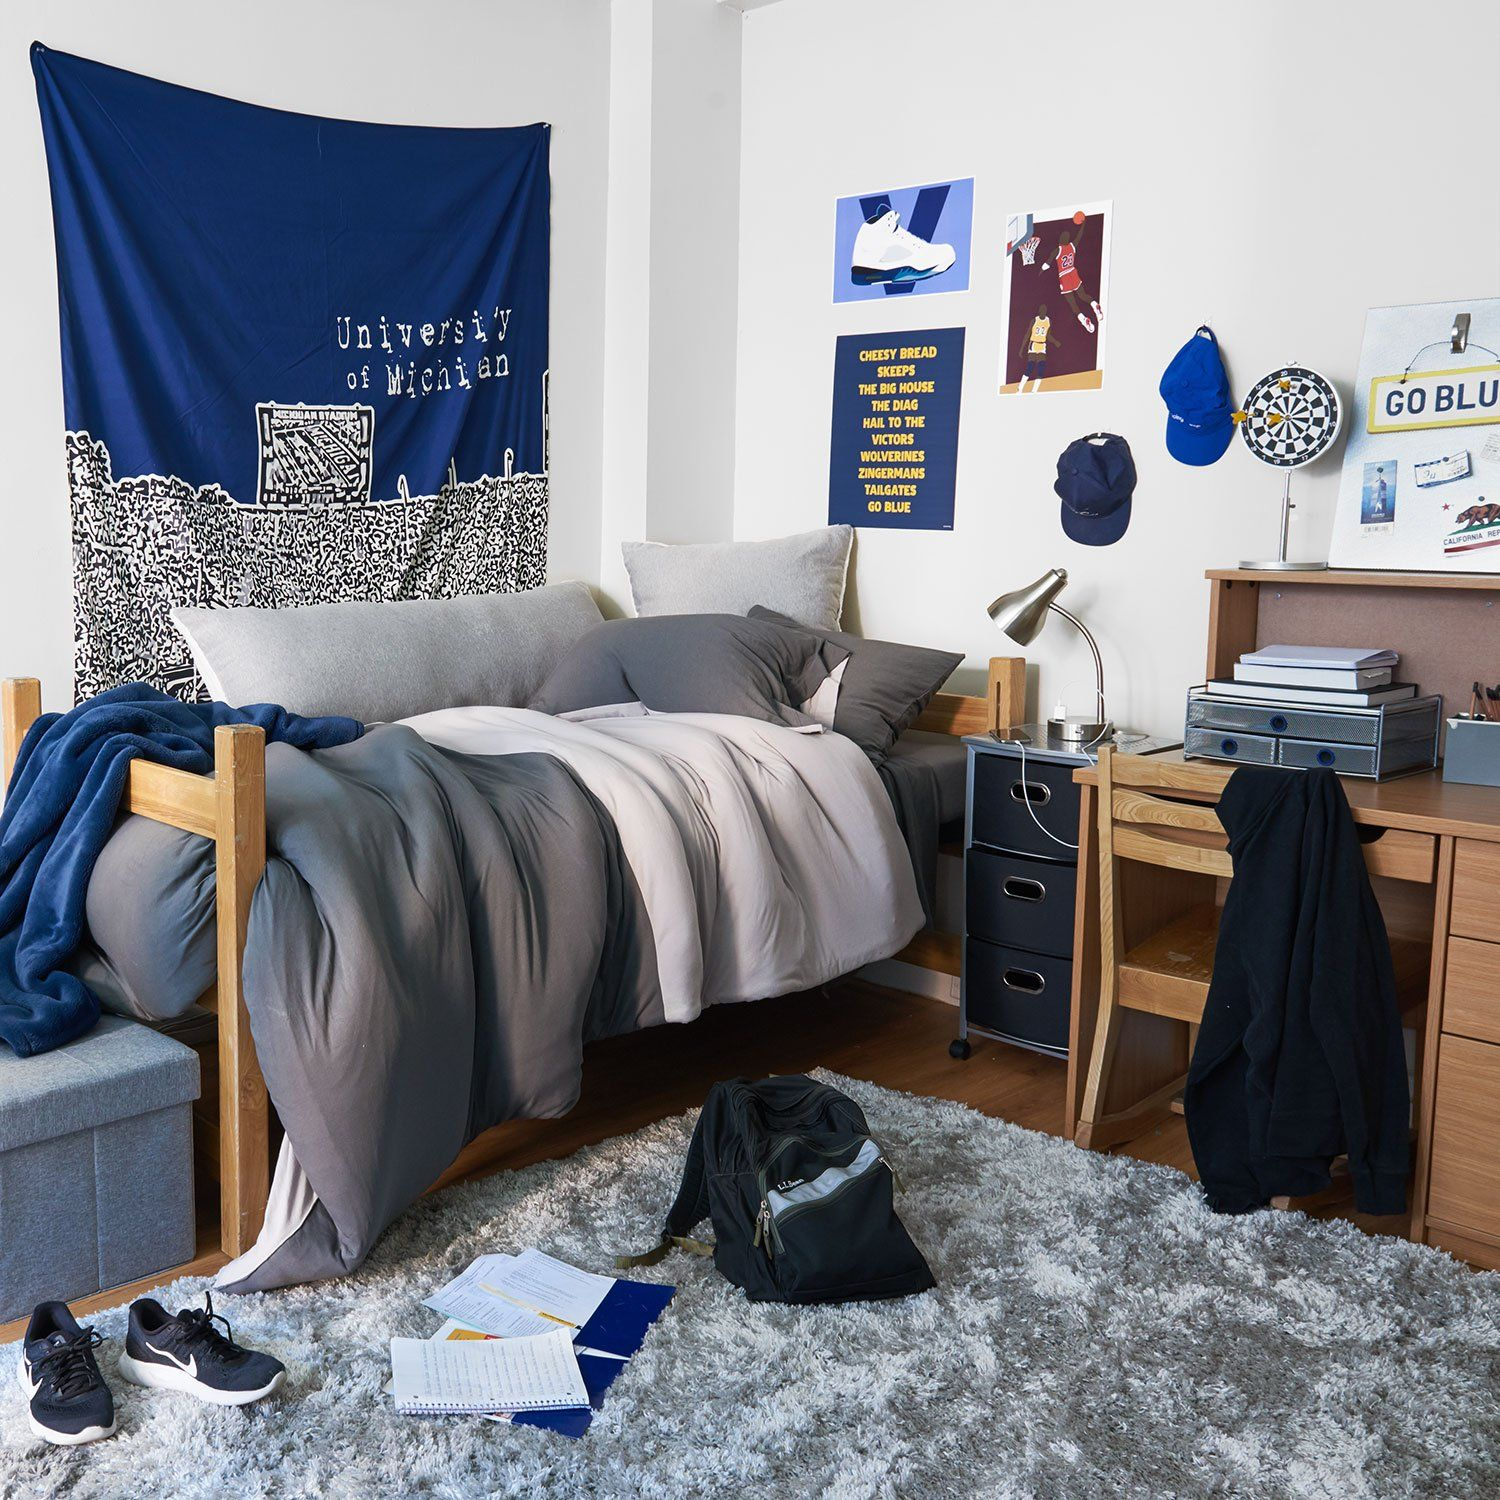 Best Room Ideas For Guys Guys Dorm Room Ideas Dormify 400 x 300